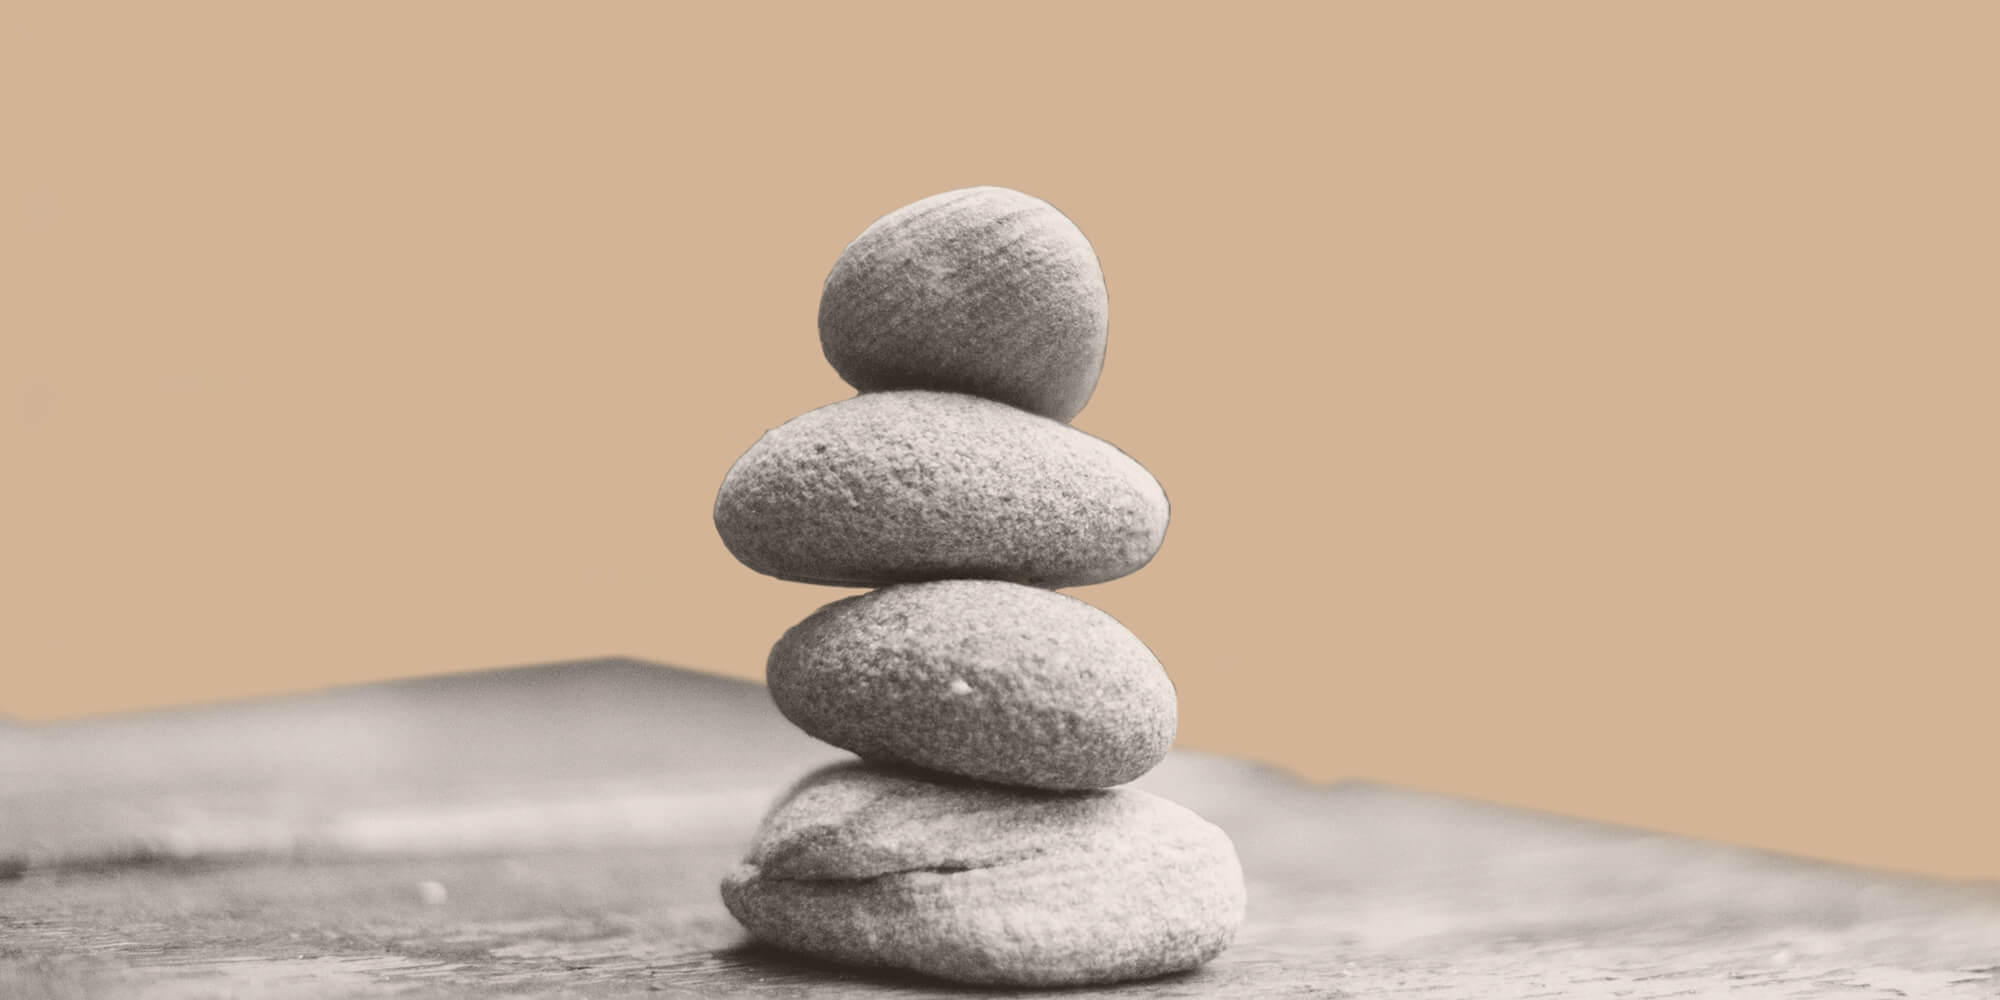 Four stones balanced atop one another. Slef-care